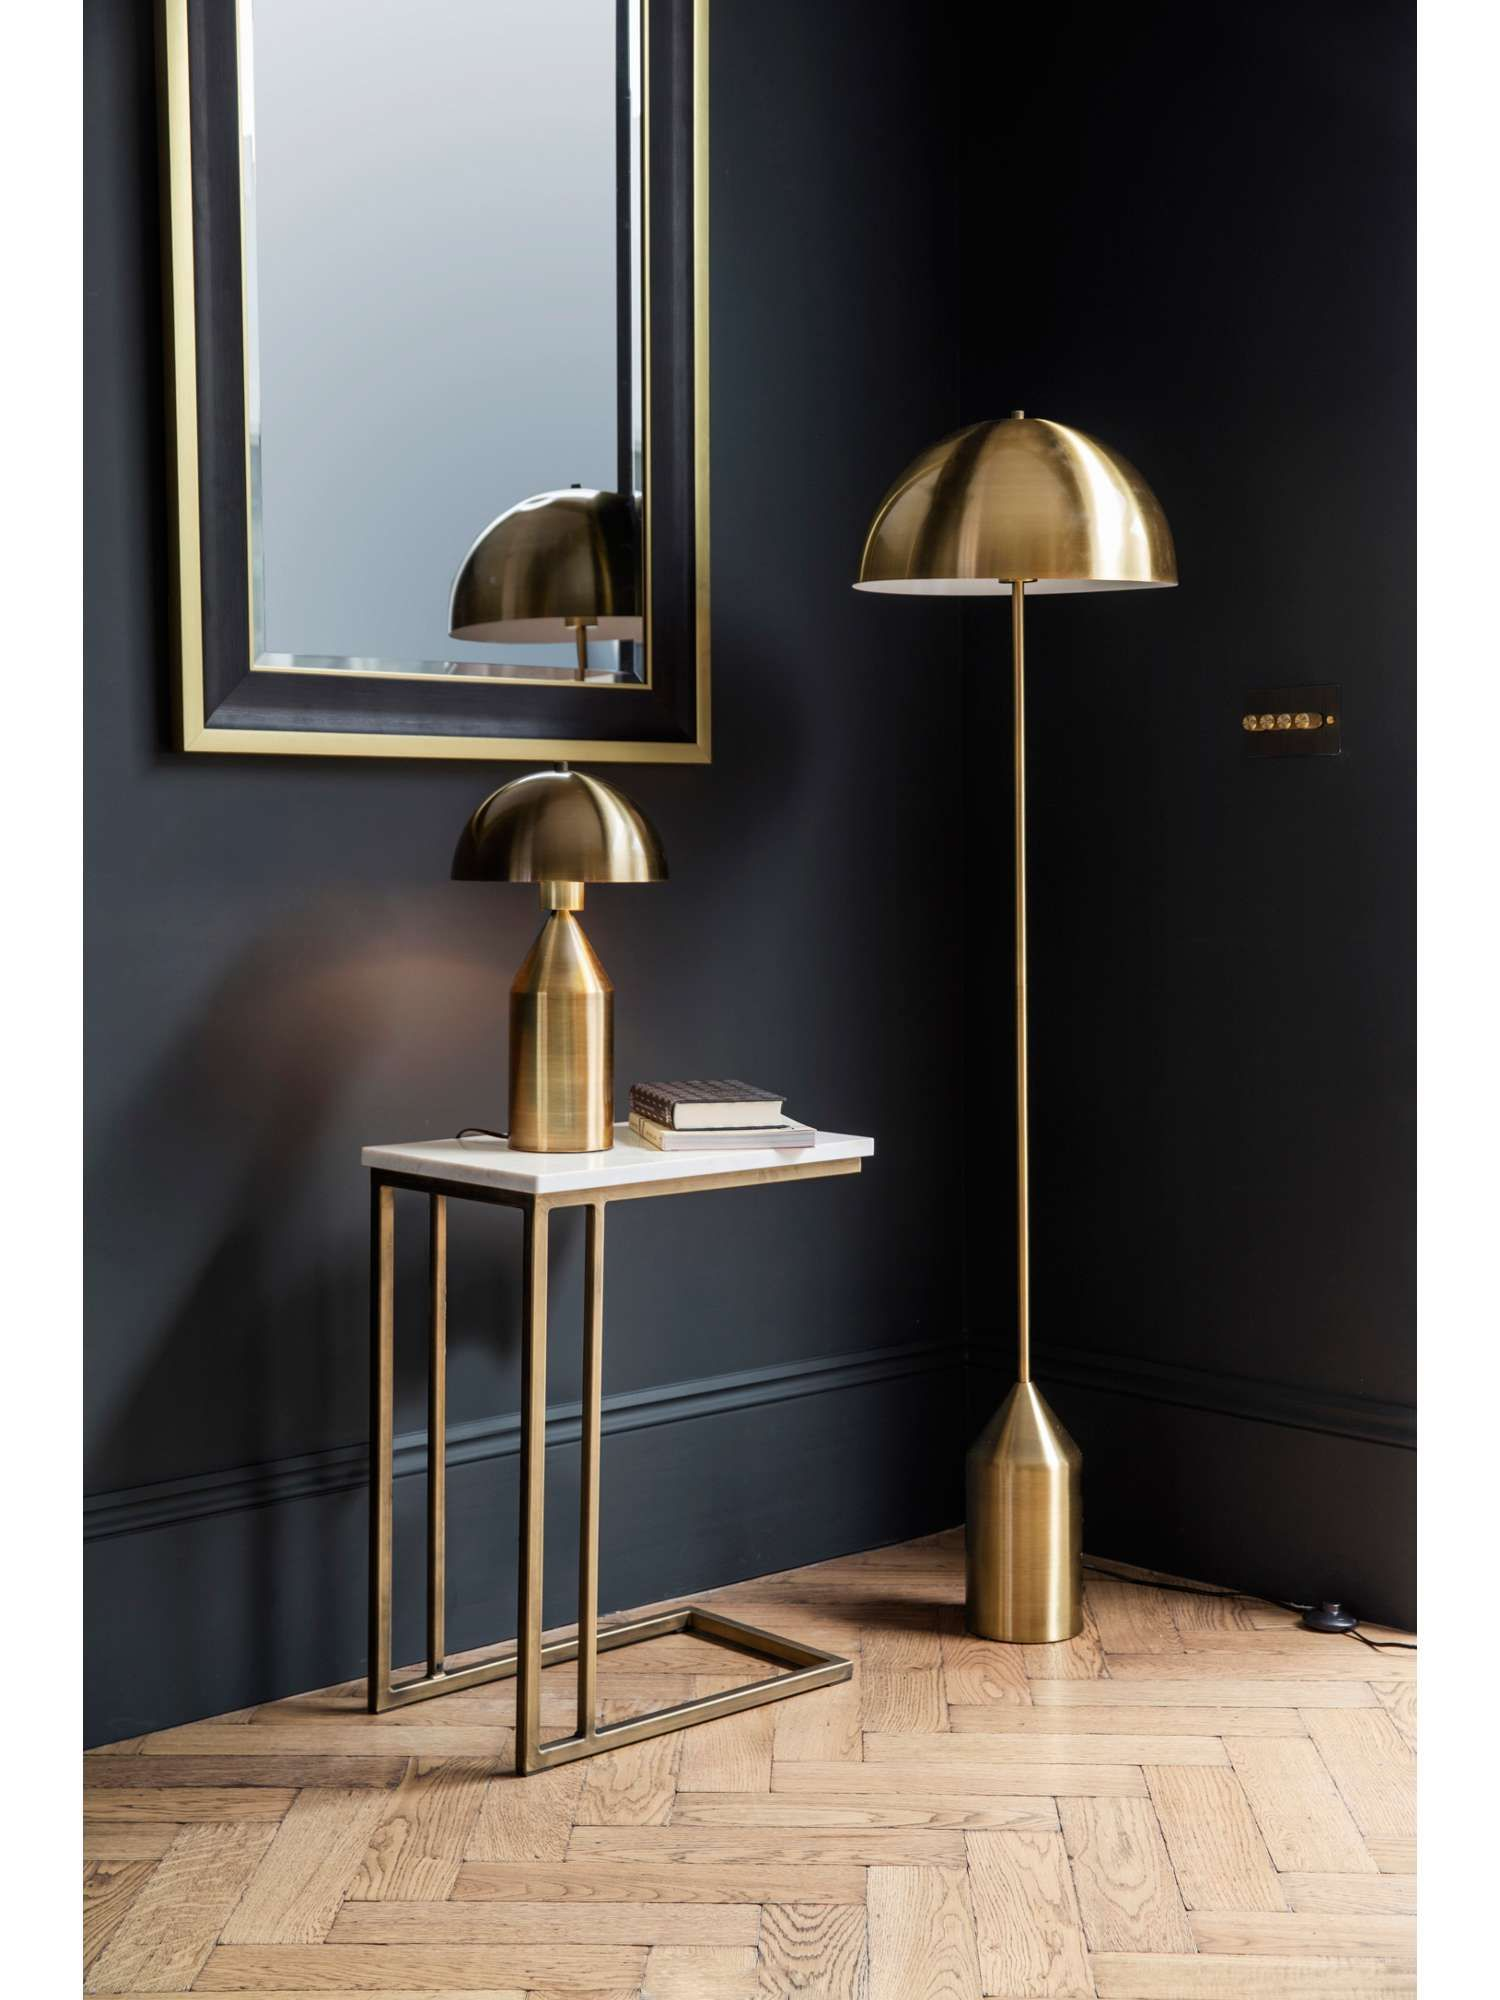 Buy your Biba Albany Gold Floor Lamp online now at House of